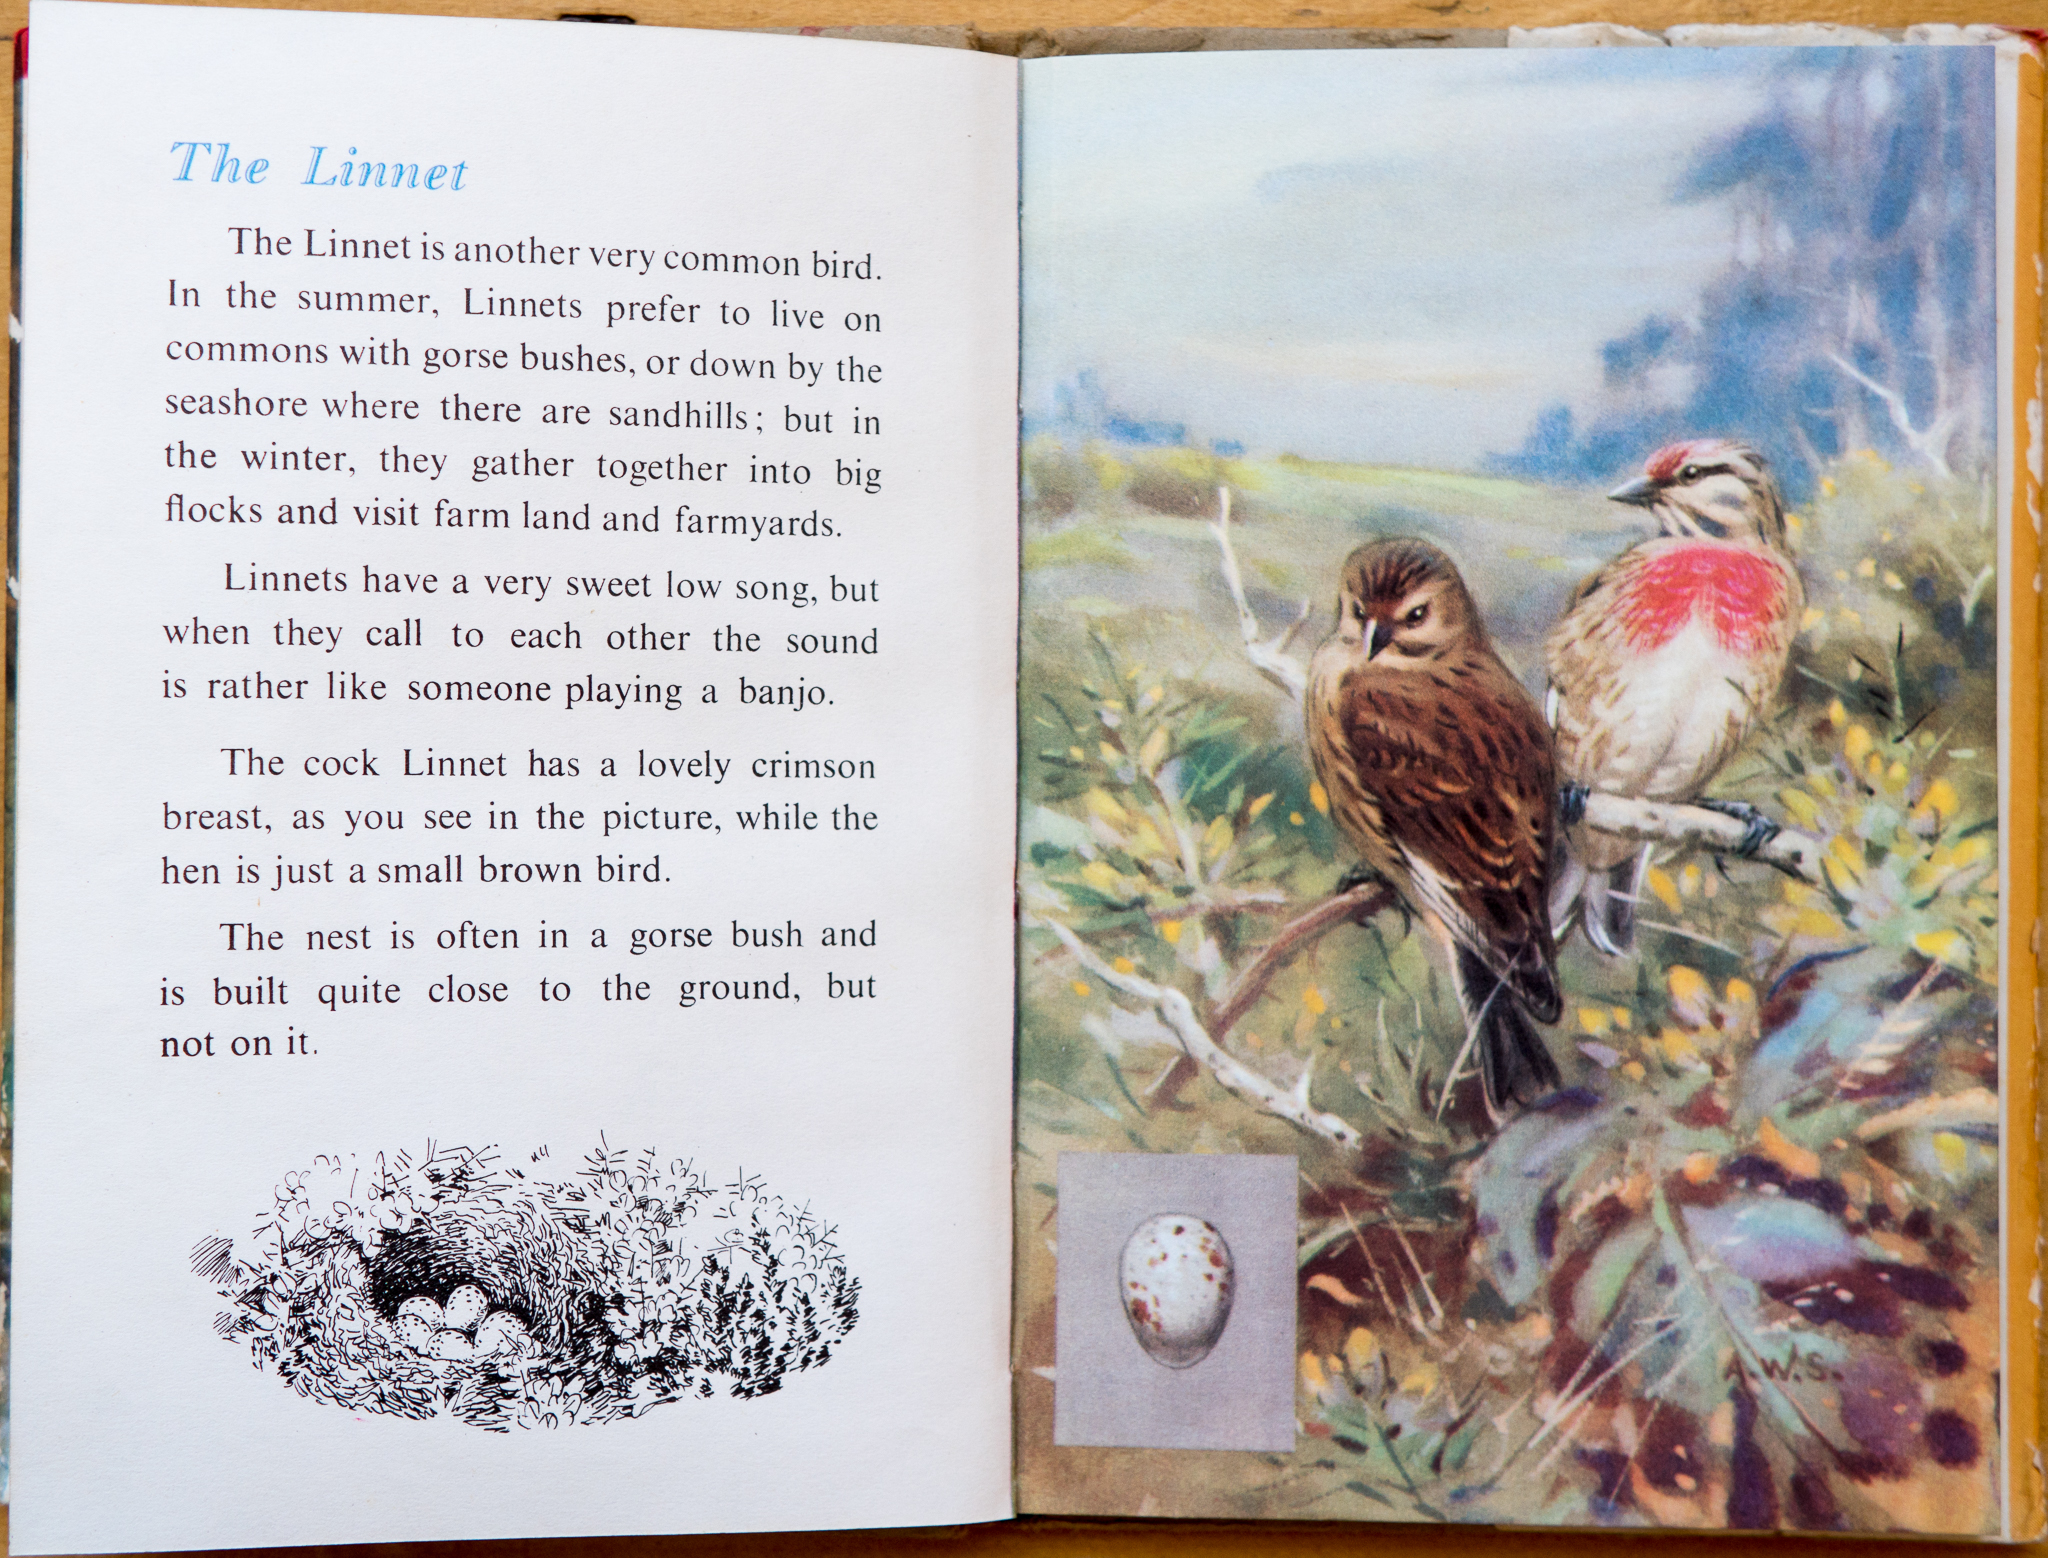 The Linnet - Ladybird Book of British Birds - The Hall of Einar